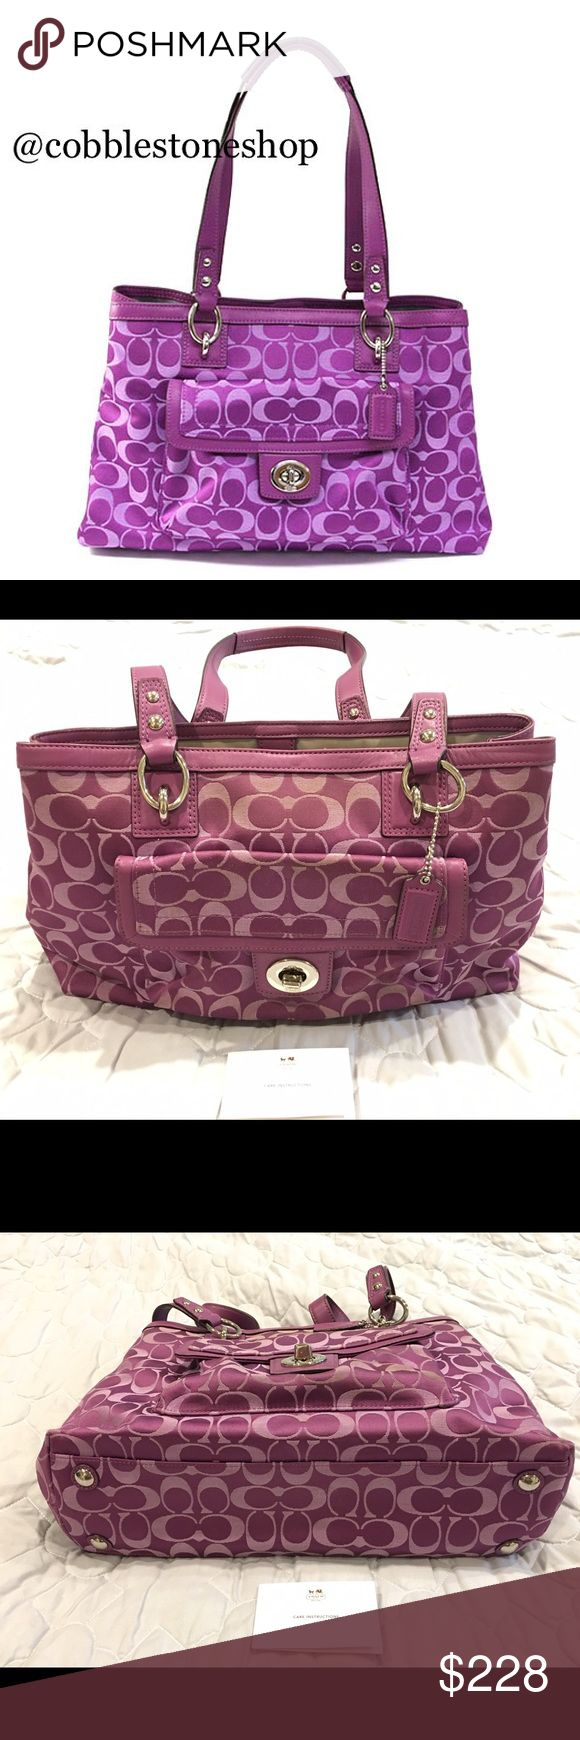 """Coach F19043 Plum Penelope signature carryall Coach F19043 Plum Penelope signature carryall length 14.5"""" x Height 9.25"""" x Depth 4.75""""  Handle drop 8.75 Some slight wear/discoloration/small marks on inside see pictures  Make an offer  Coach Bags"""